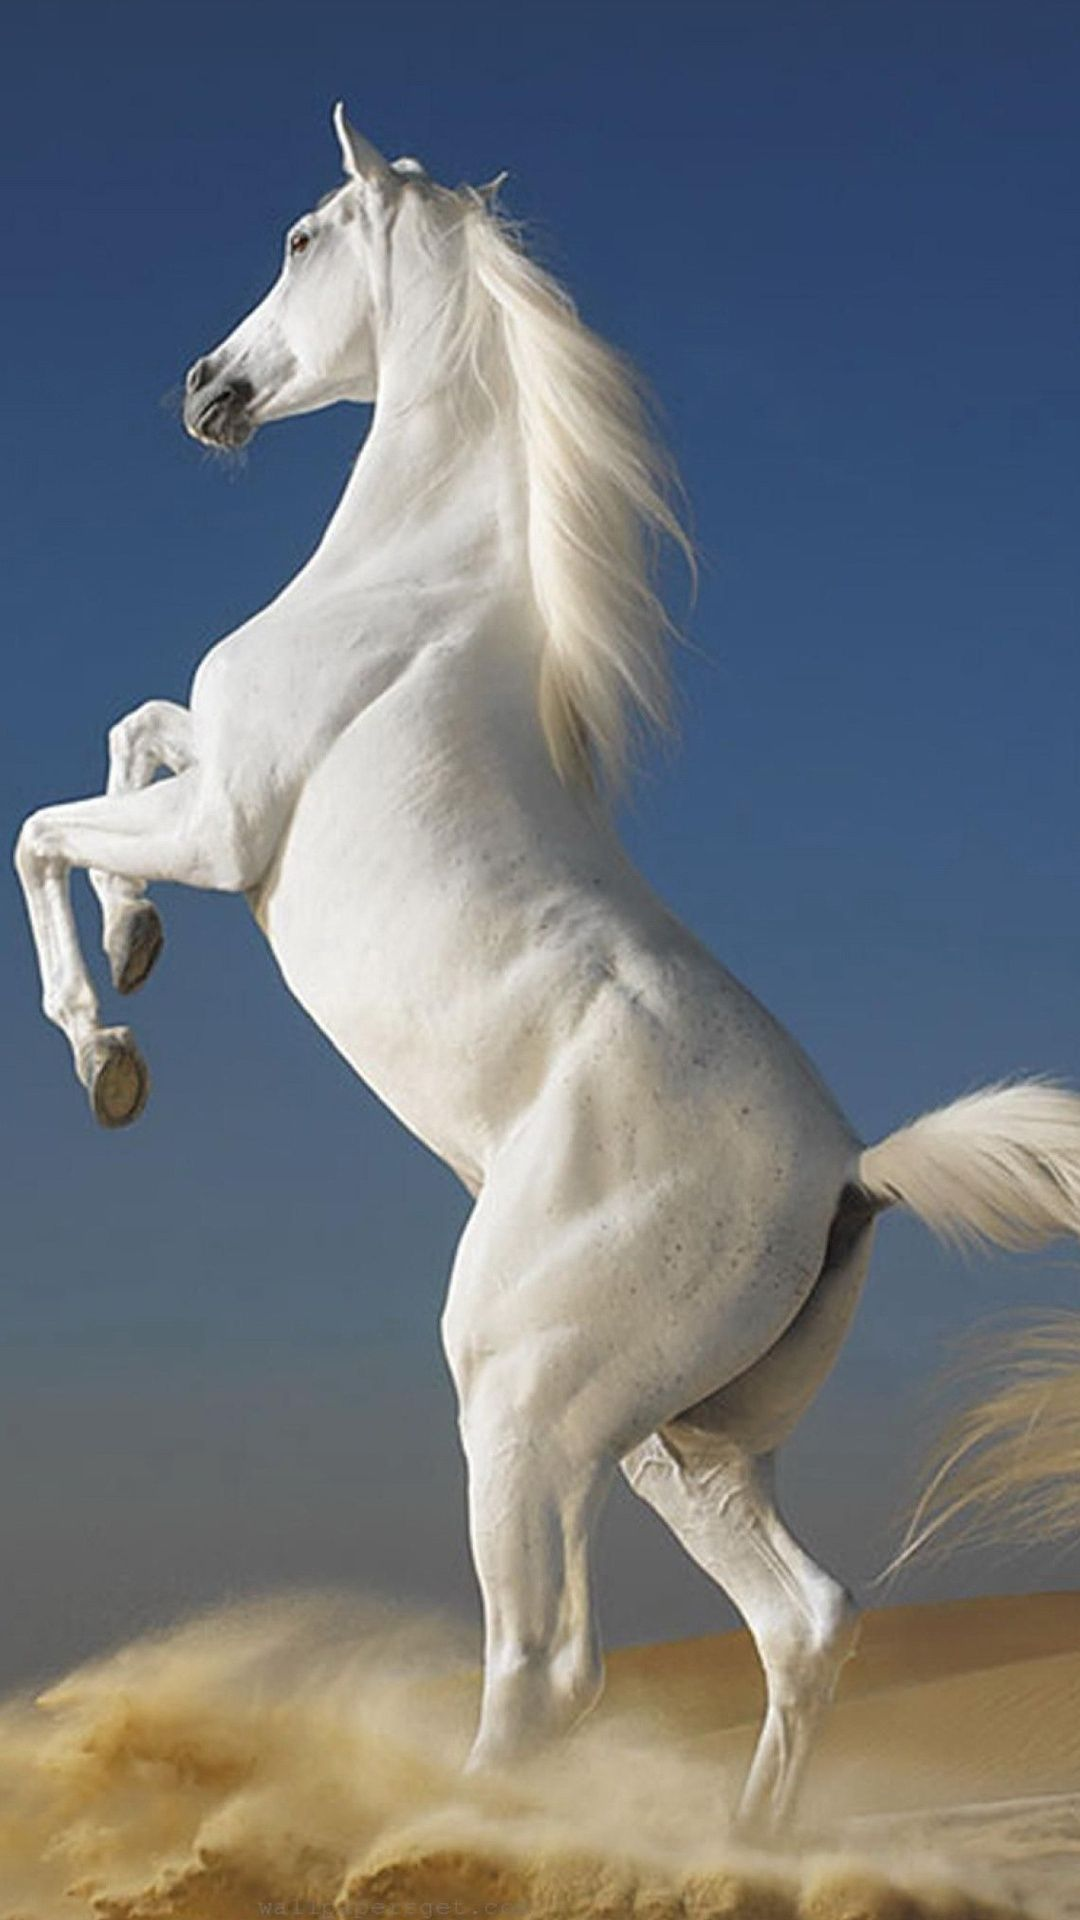 TAP AND GET THE FREE APP! Animals White Horse Blue Sand